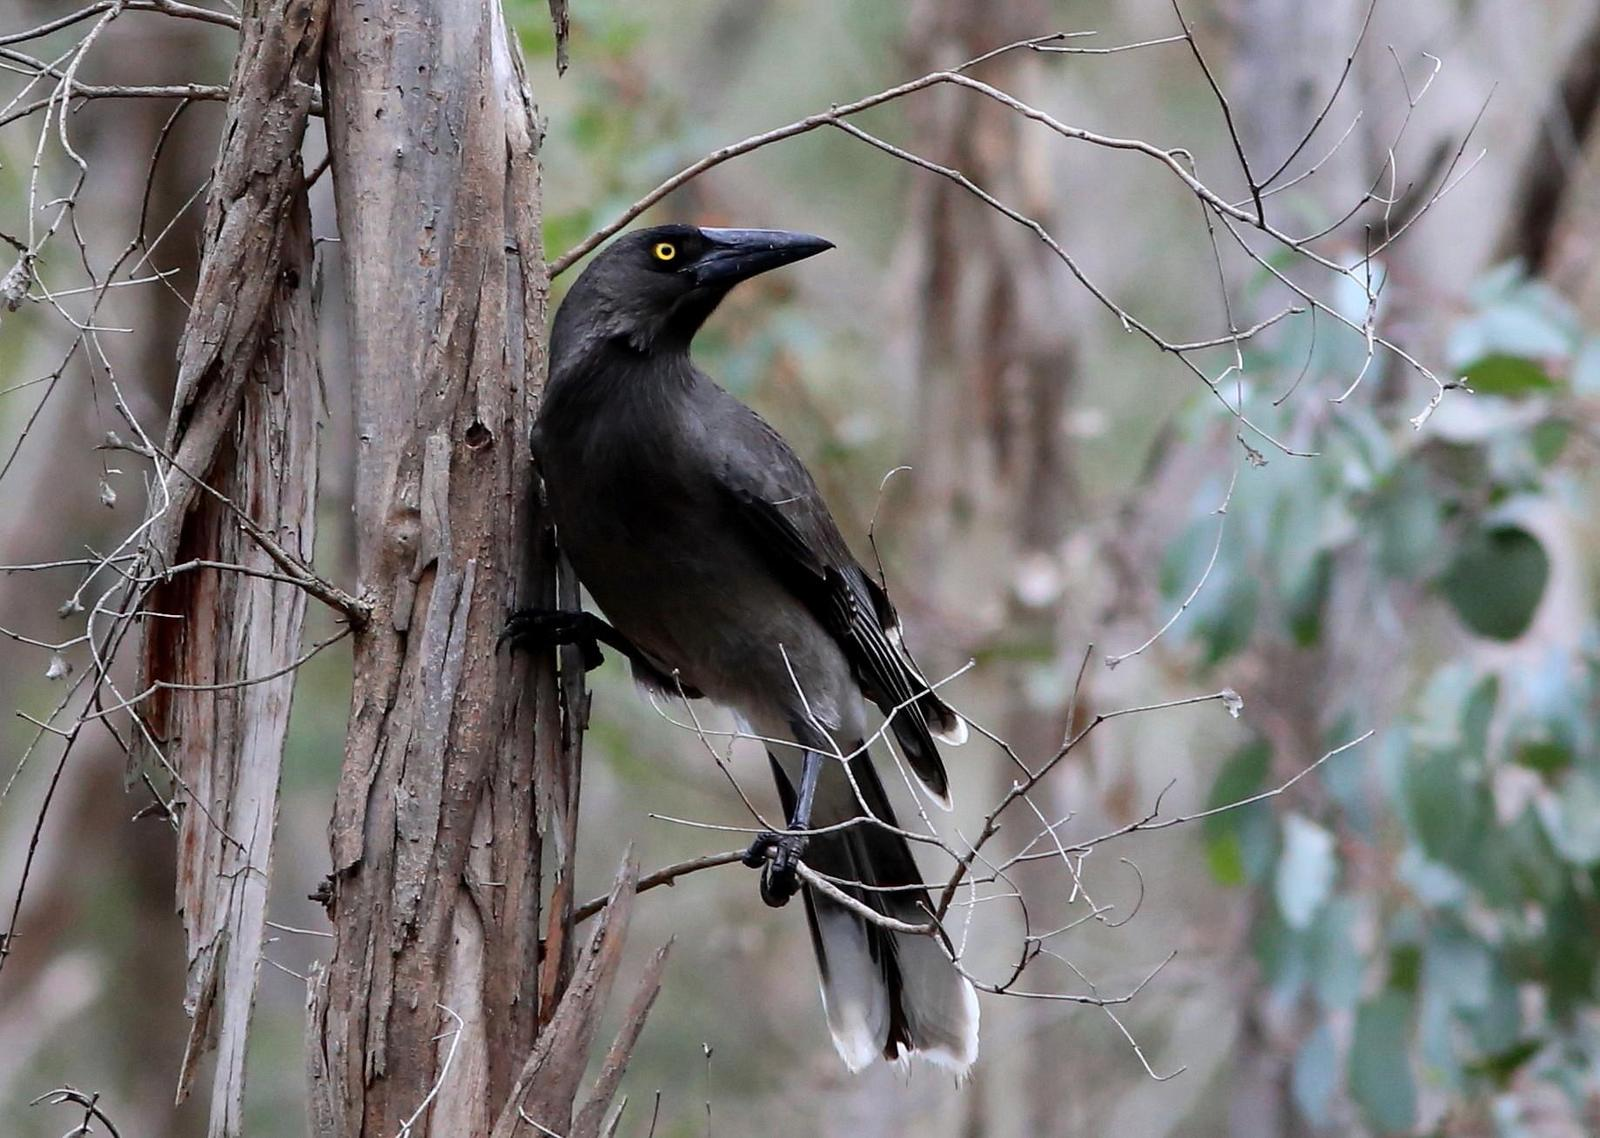 Gray Currawong Photo by Rohan van Twest